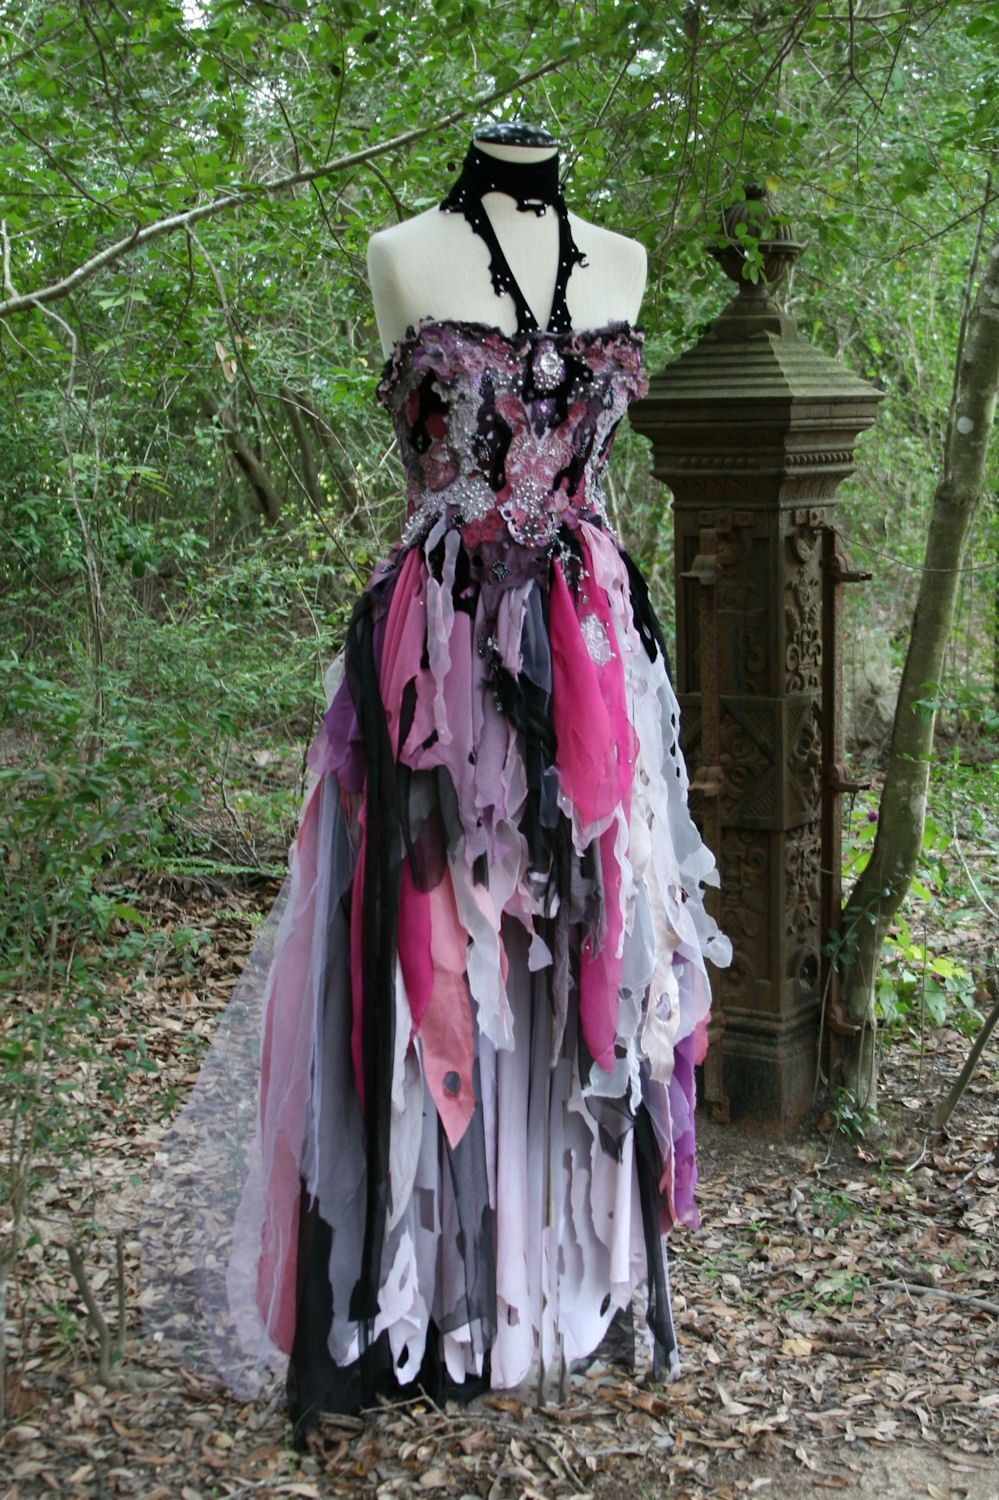 Dream Bohemian Fantasy Steampunk Vampire Goth Witch Wedding Gown OOAK. $1,800.00, via Etsy ...